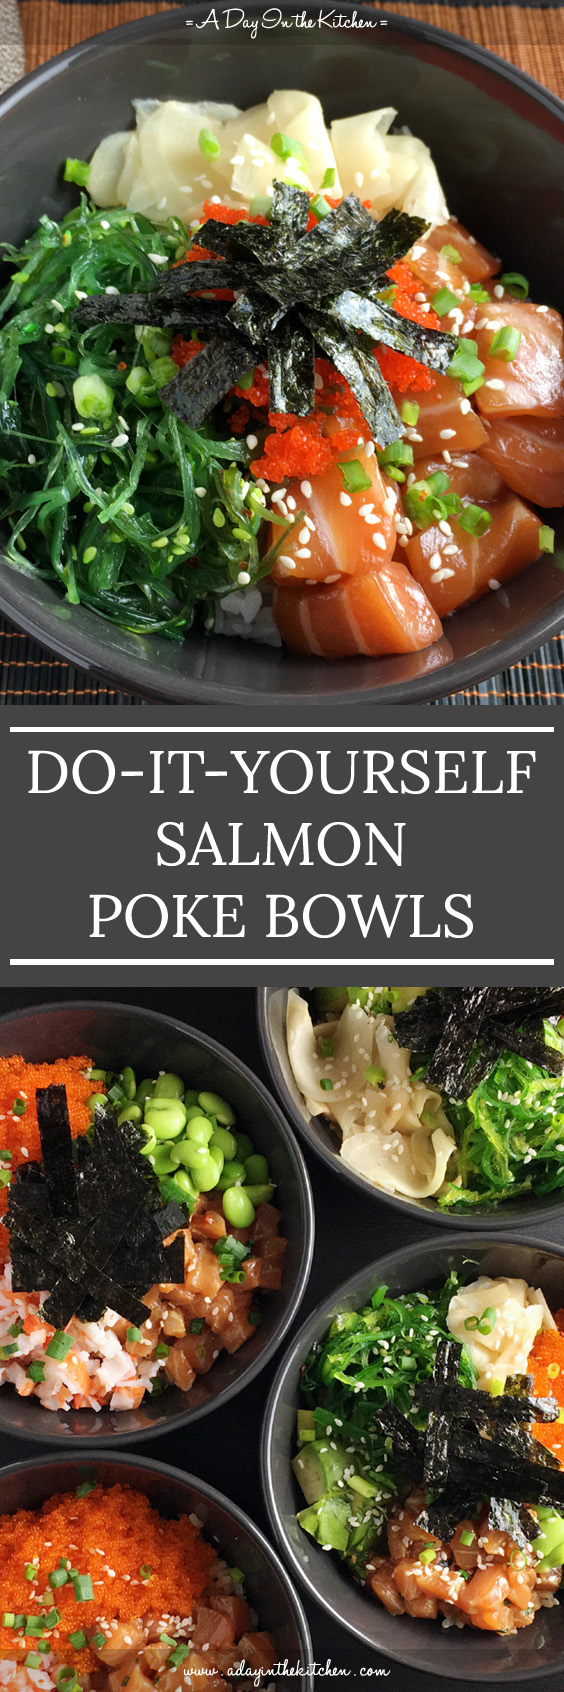 Making your own salmon poke bowls is easier than you think! Choose your favorite toppings and you've got a great meal in a bowl! #glutenfree #salmon #pokebowls